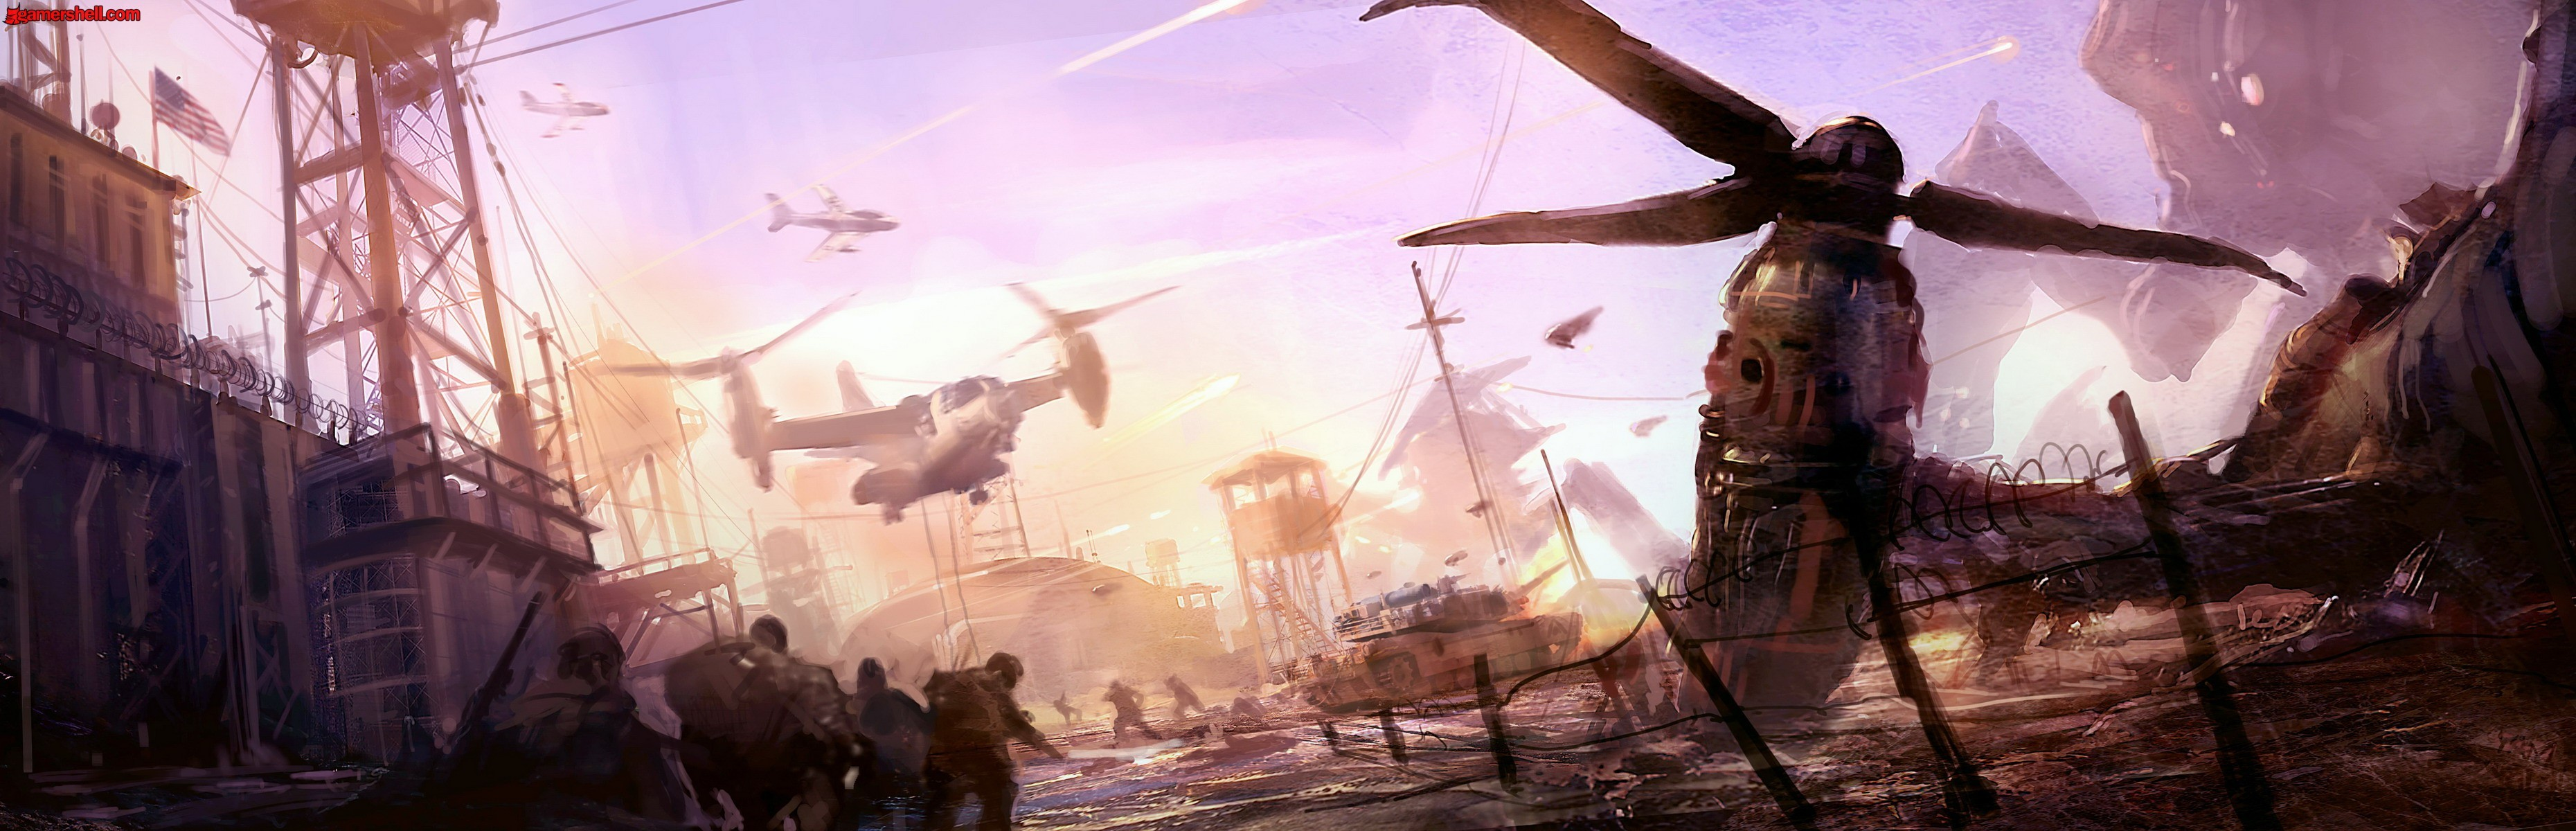 resistance War aircrafts soldiers HD Wallpaper